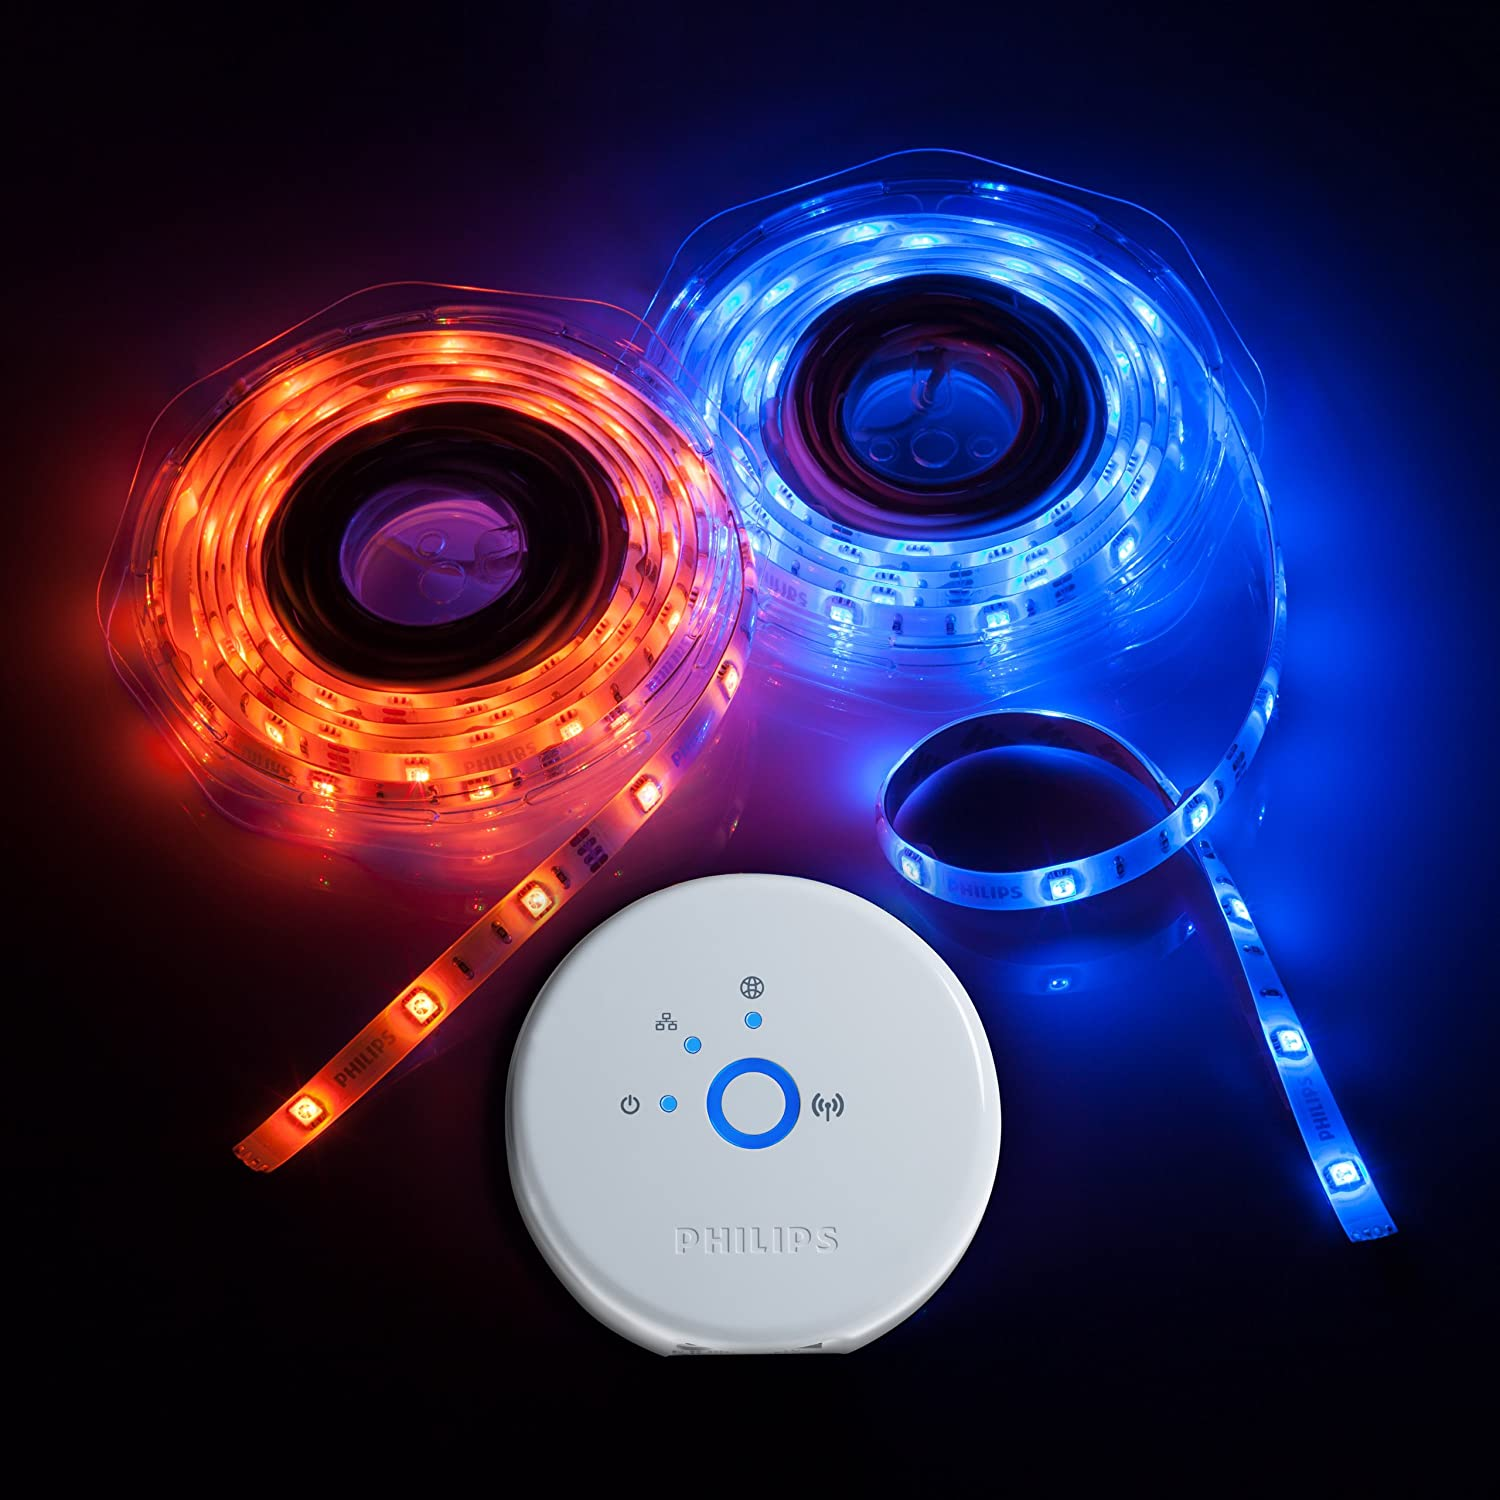 Philips Friends of Hue Personal Wireless LightStrip